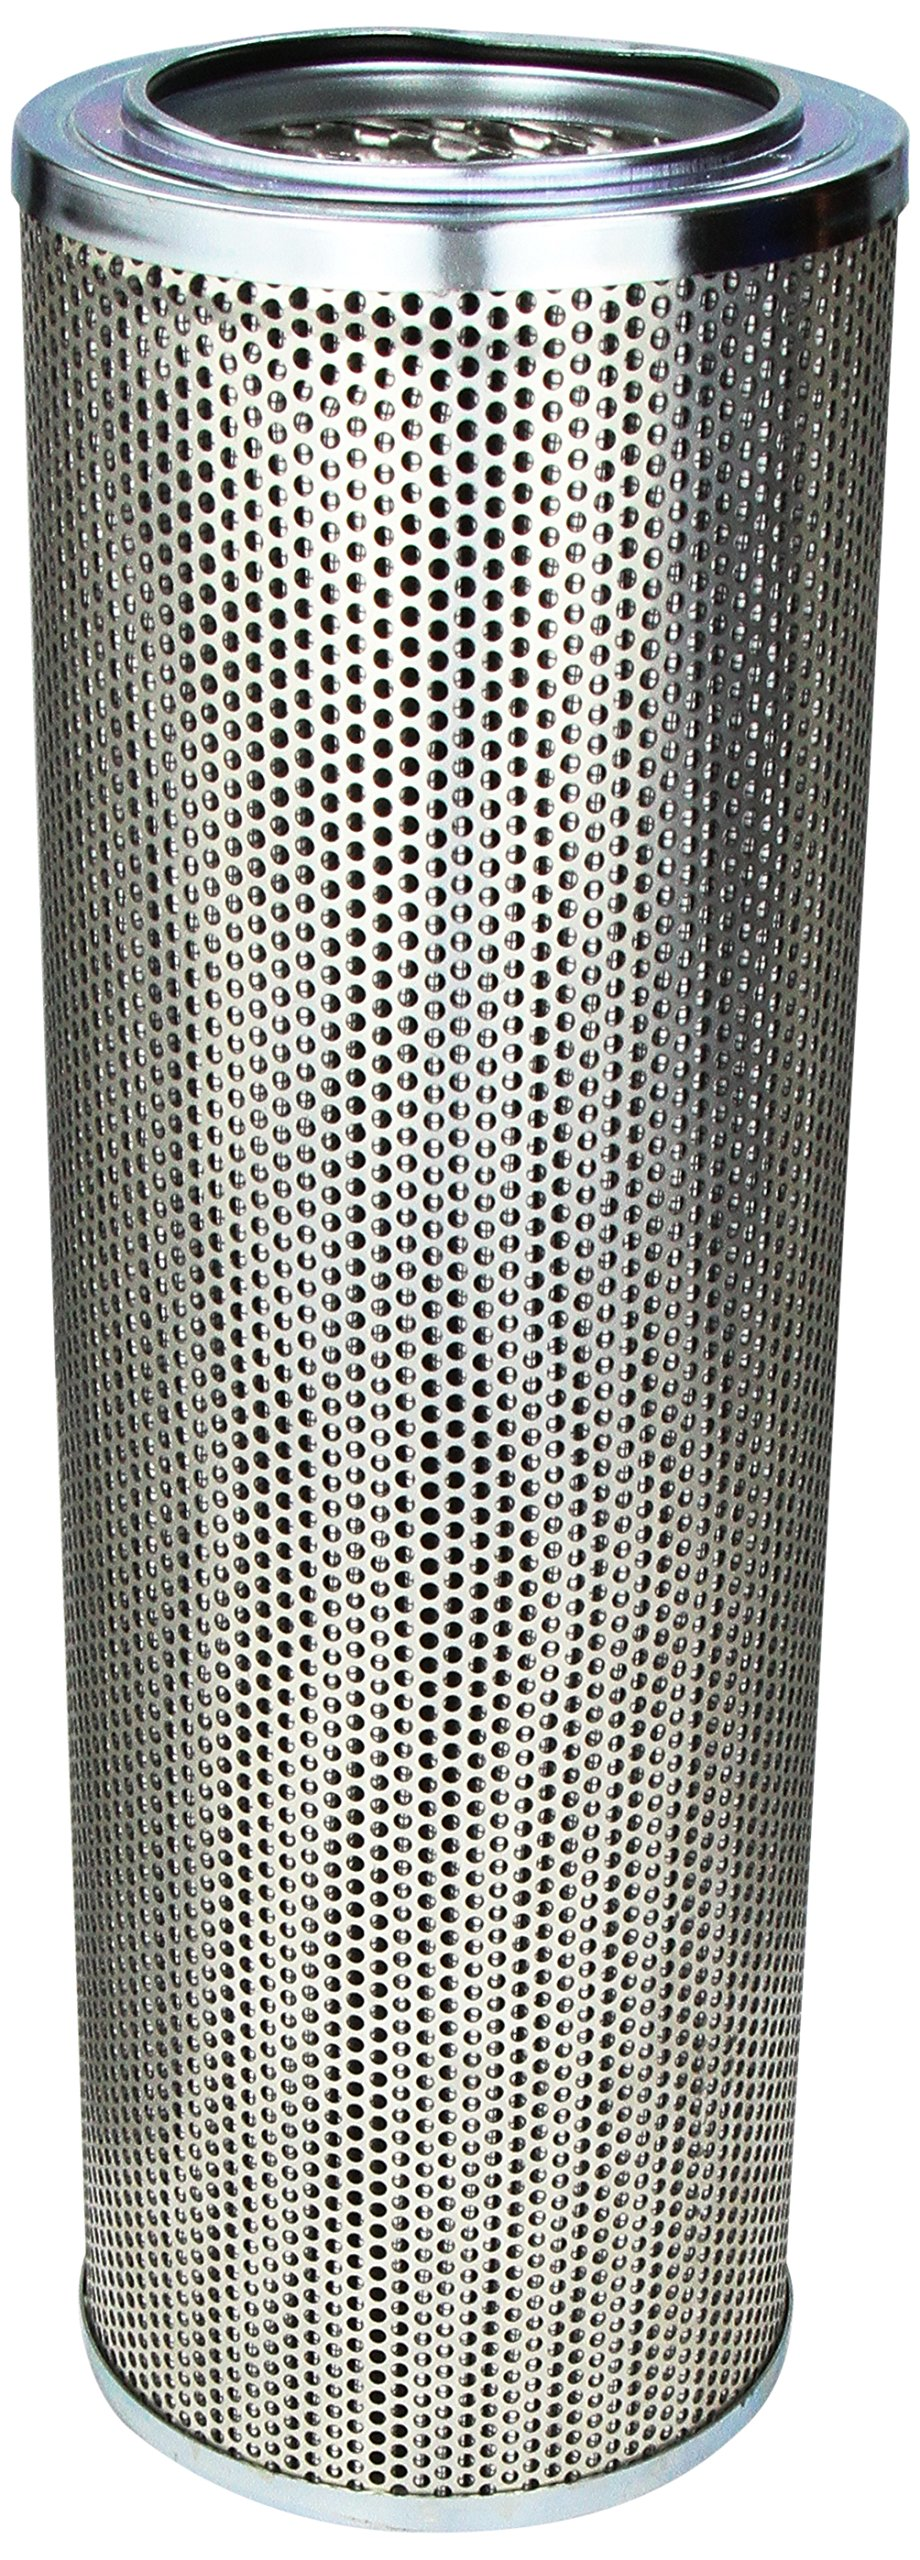 WIX Filters - 57896 Heavy Duty Cartridge Hydraulic Metal, Pack of 1 by Wix